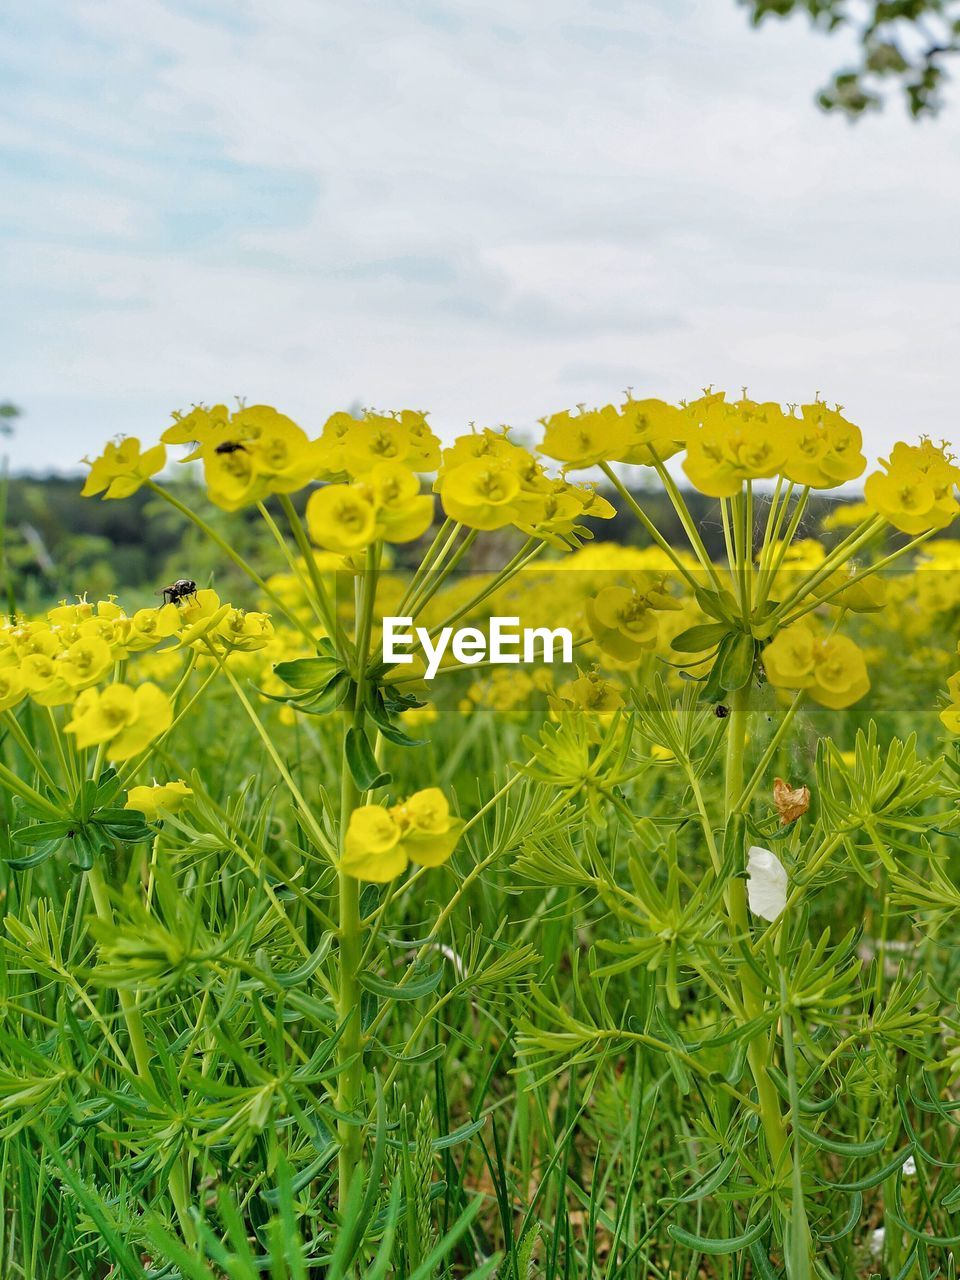 yellow, flower, flowering plant, plant, growth, beauty in nature, freshness, fragility, vulnerability, field, land, nature, sky, close-up, agriculture, petal, oilseed rape, day, no people, inflorescence, flower head, springtime, outdoors